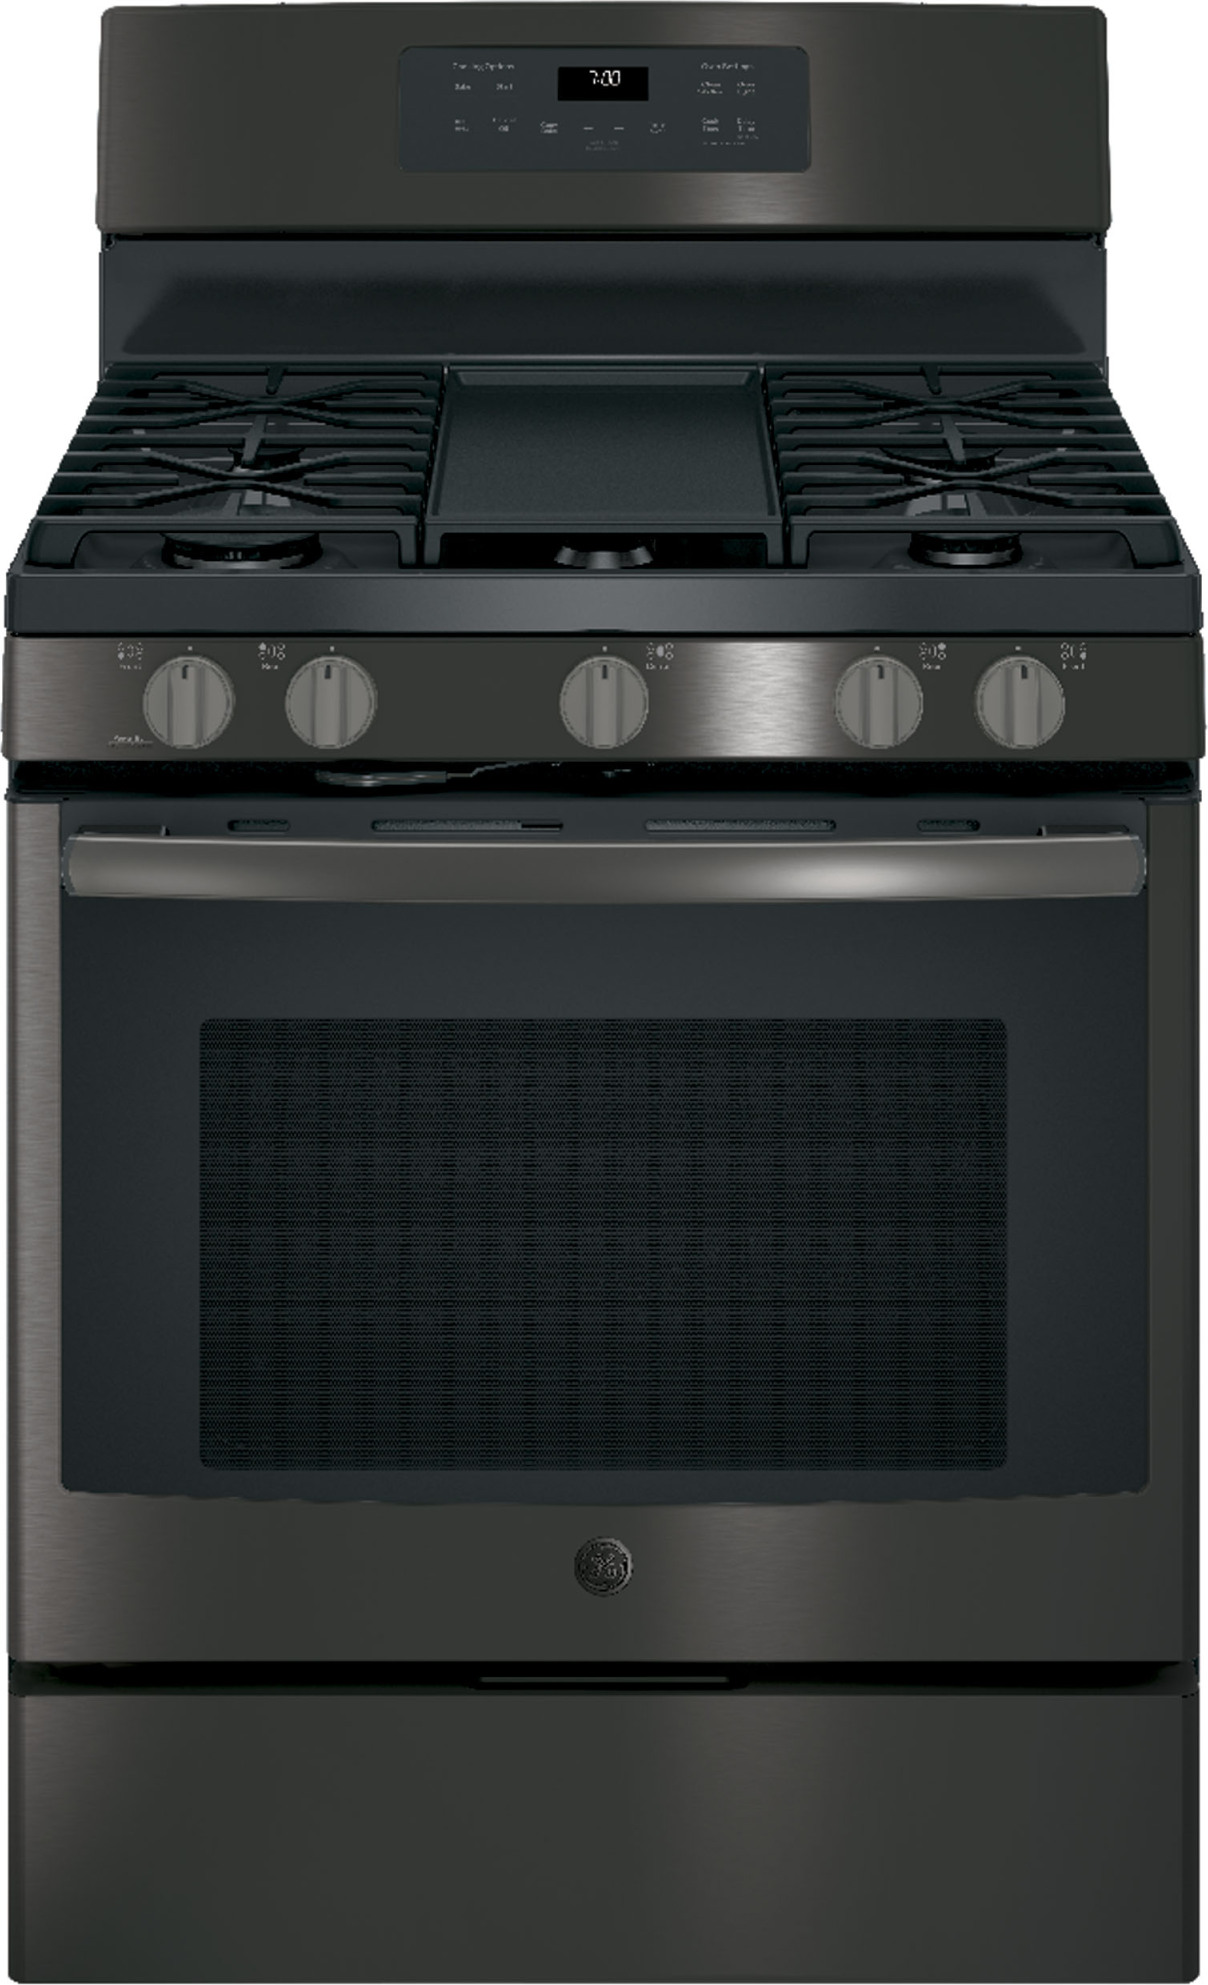 Jgb700bejts Ge 30 Convection Gas Range Steam Self Clean Black